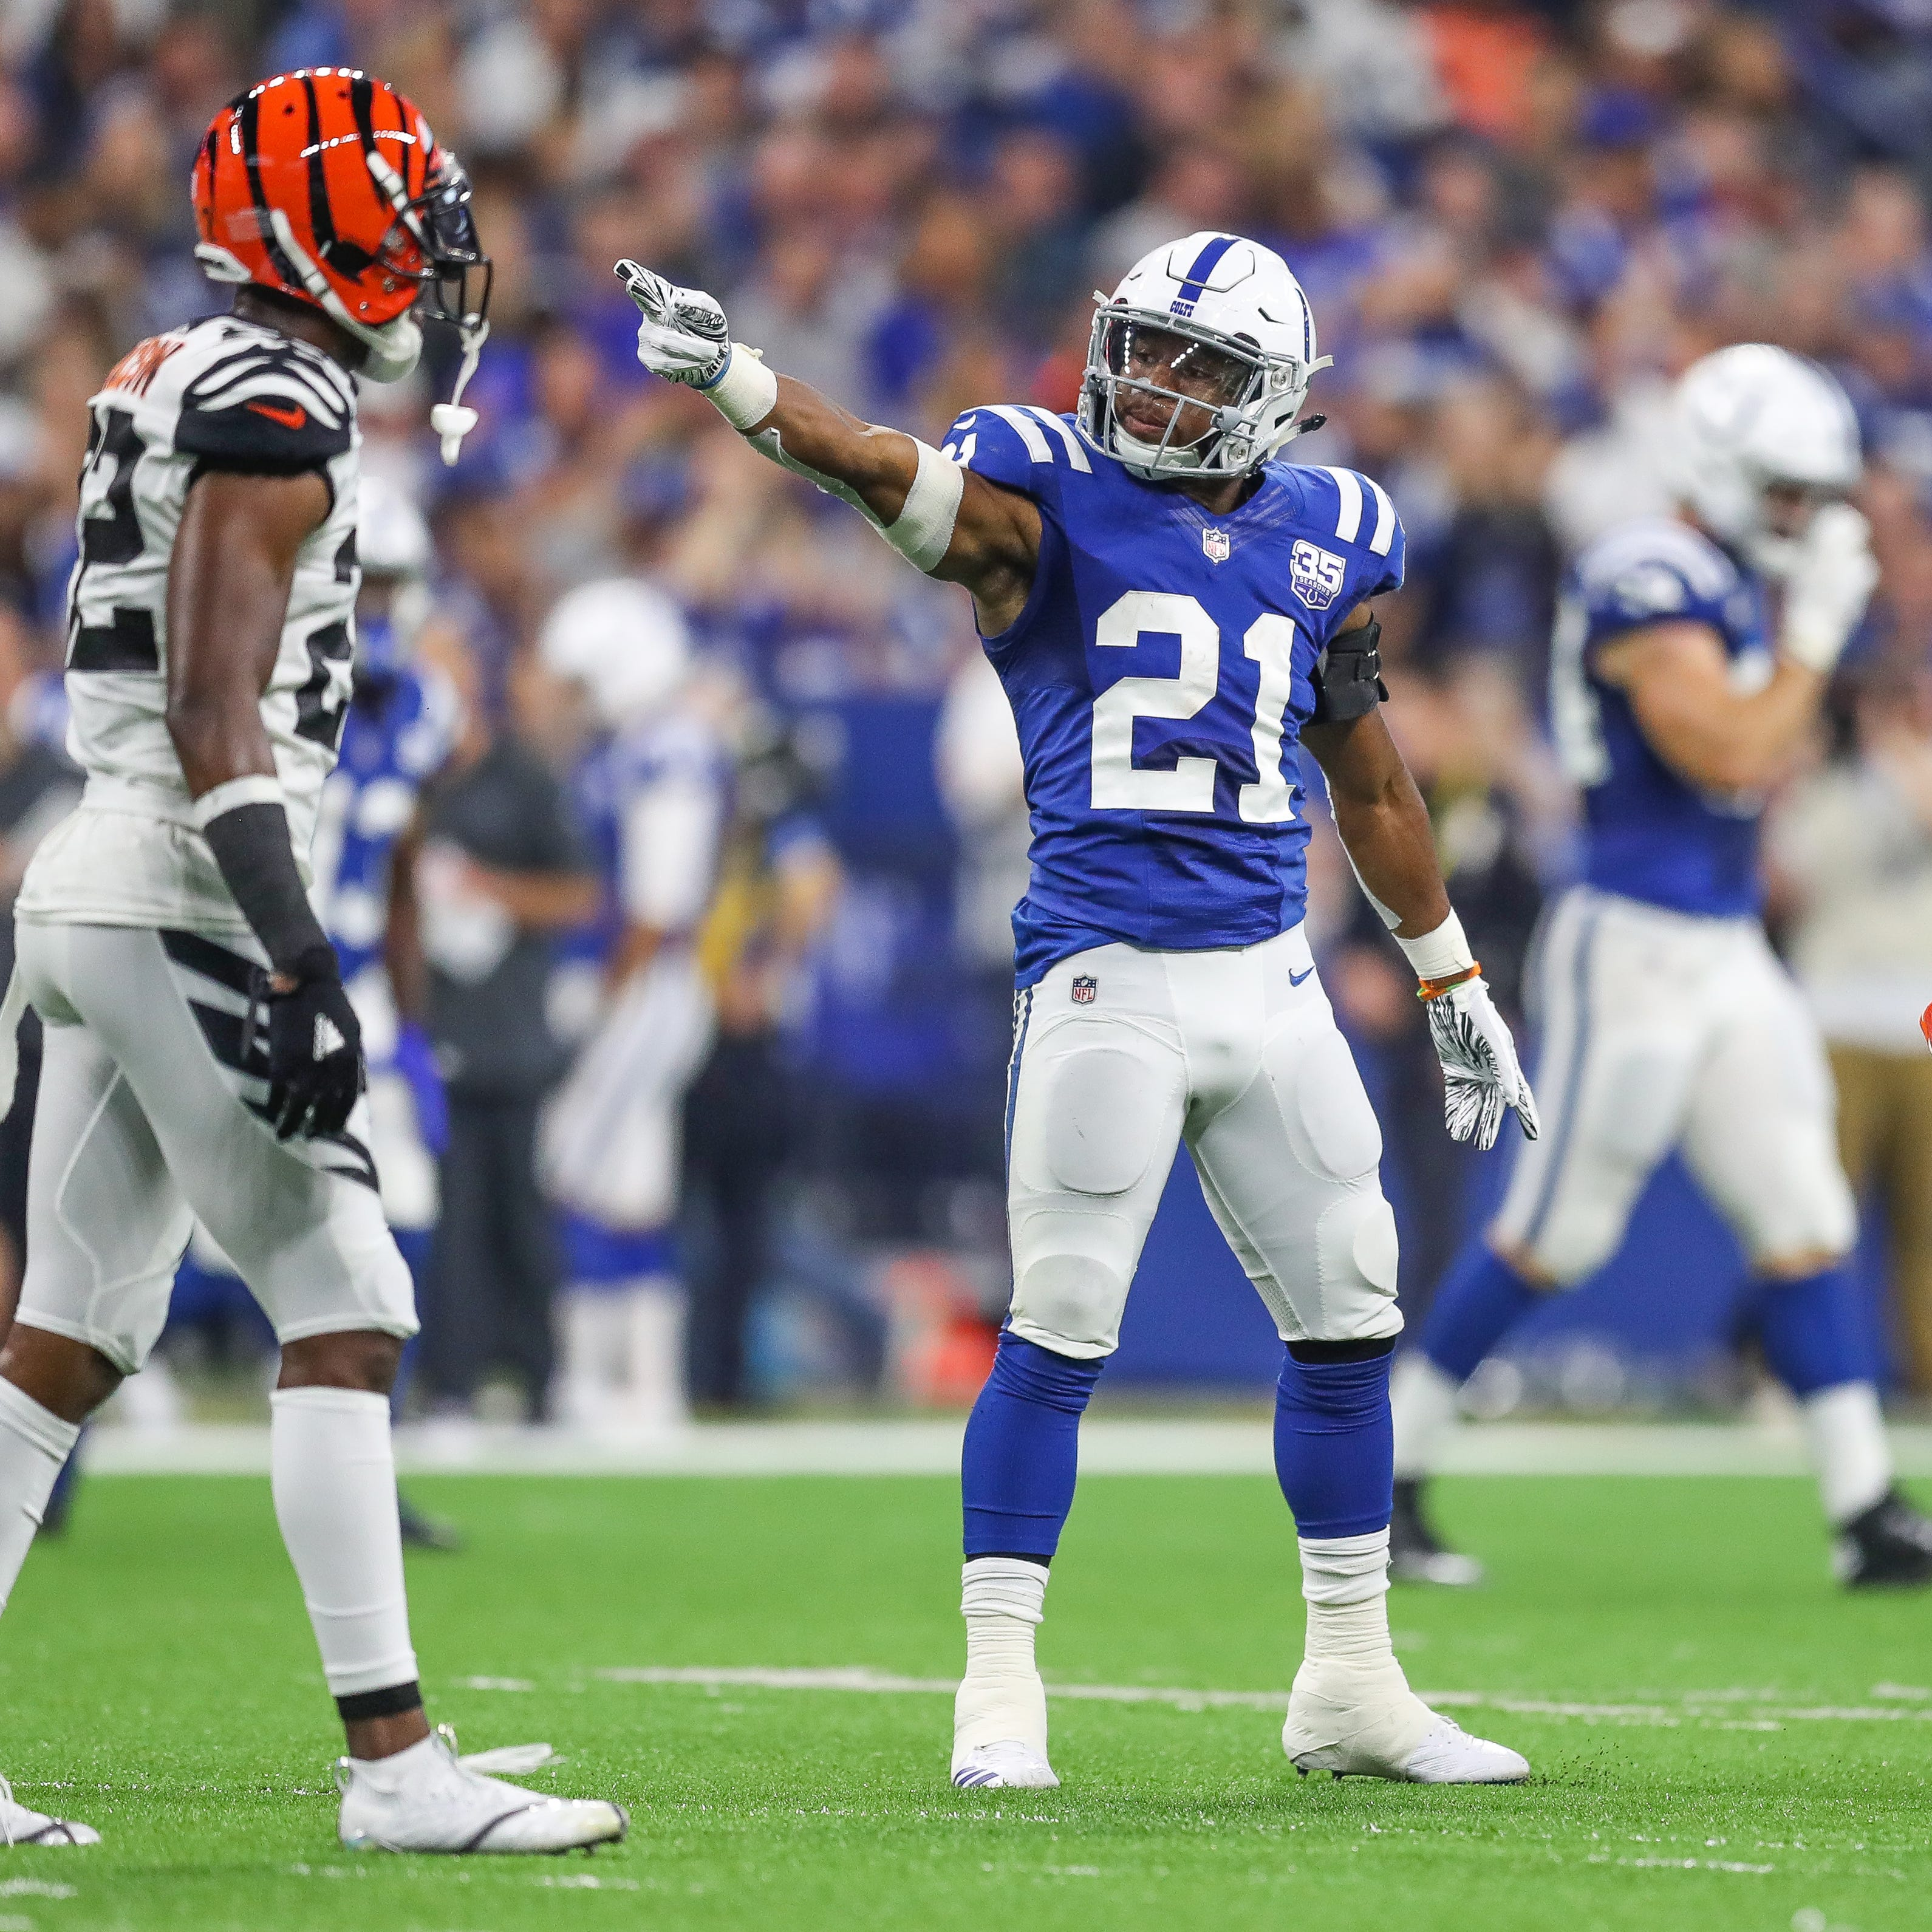 Run heavy? Pass heavy? Indianapolis Colts offense will do what's necessary to win